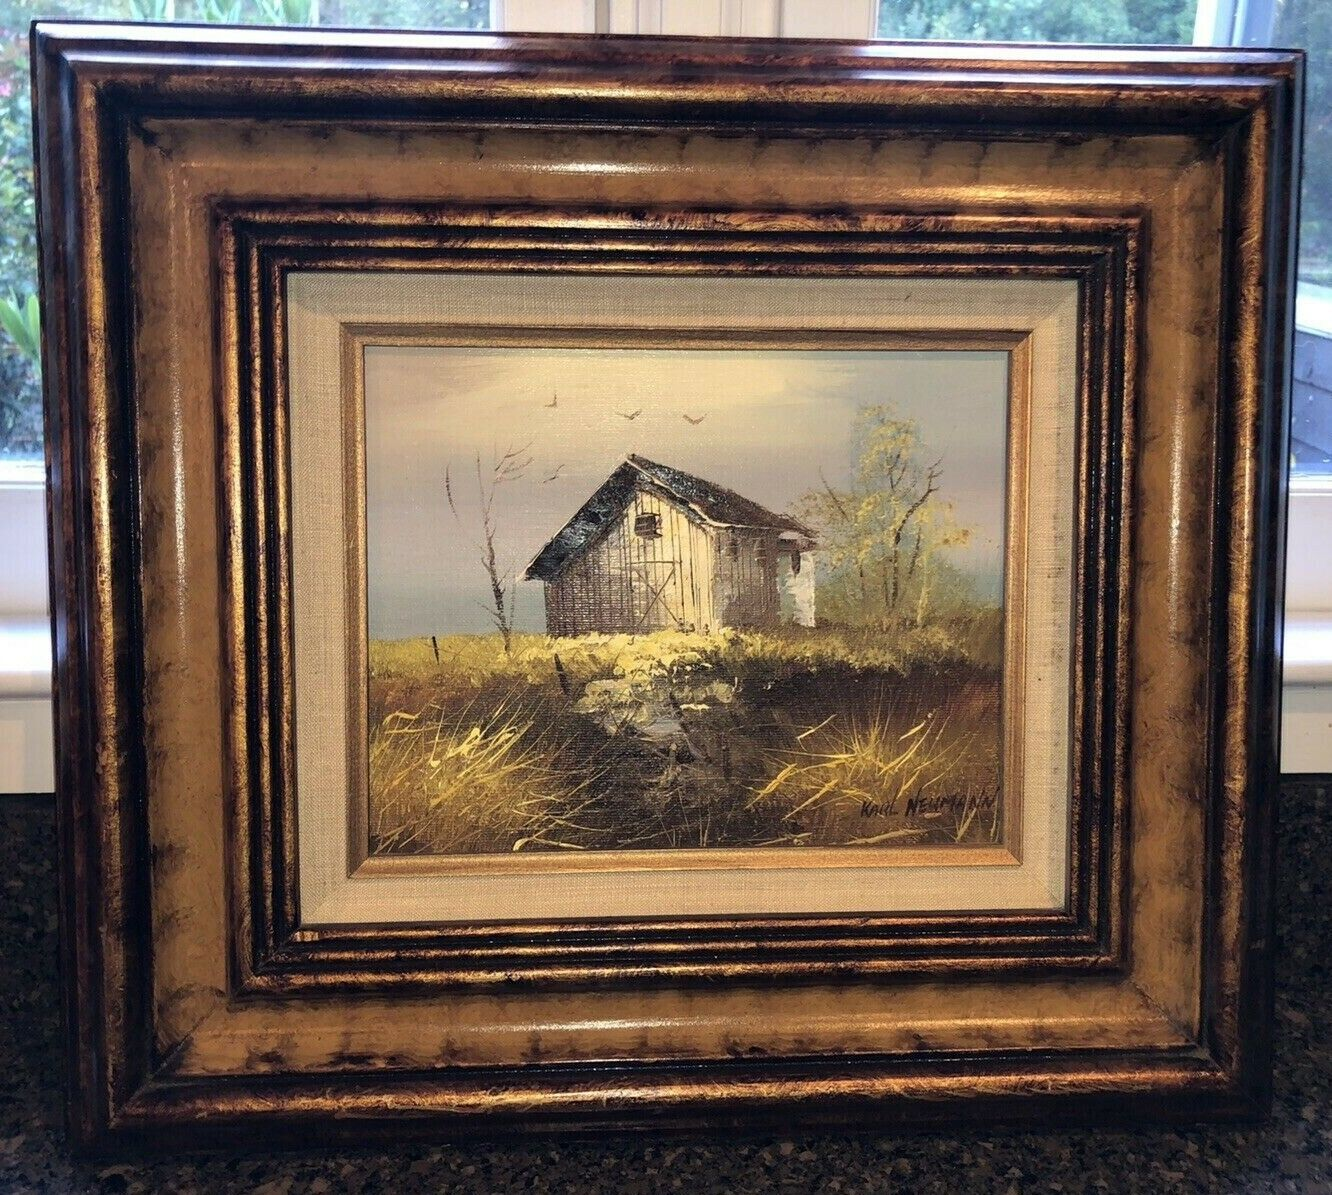 Original And Signed Karl Neumann Oil Painting On Canvas Of Rustic Barn In Frame - $114.99